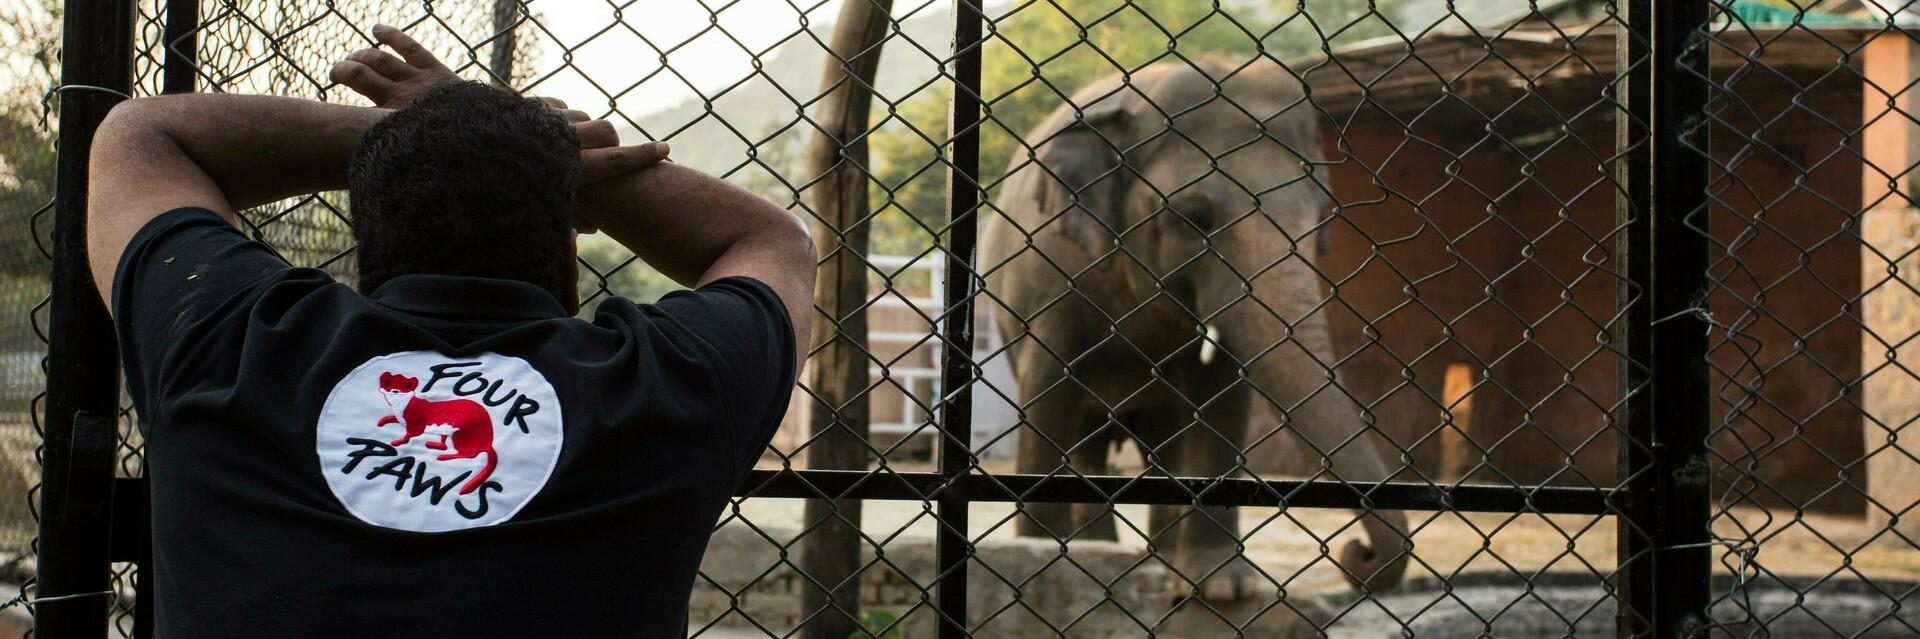 #FreeKaavan